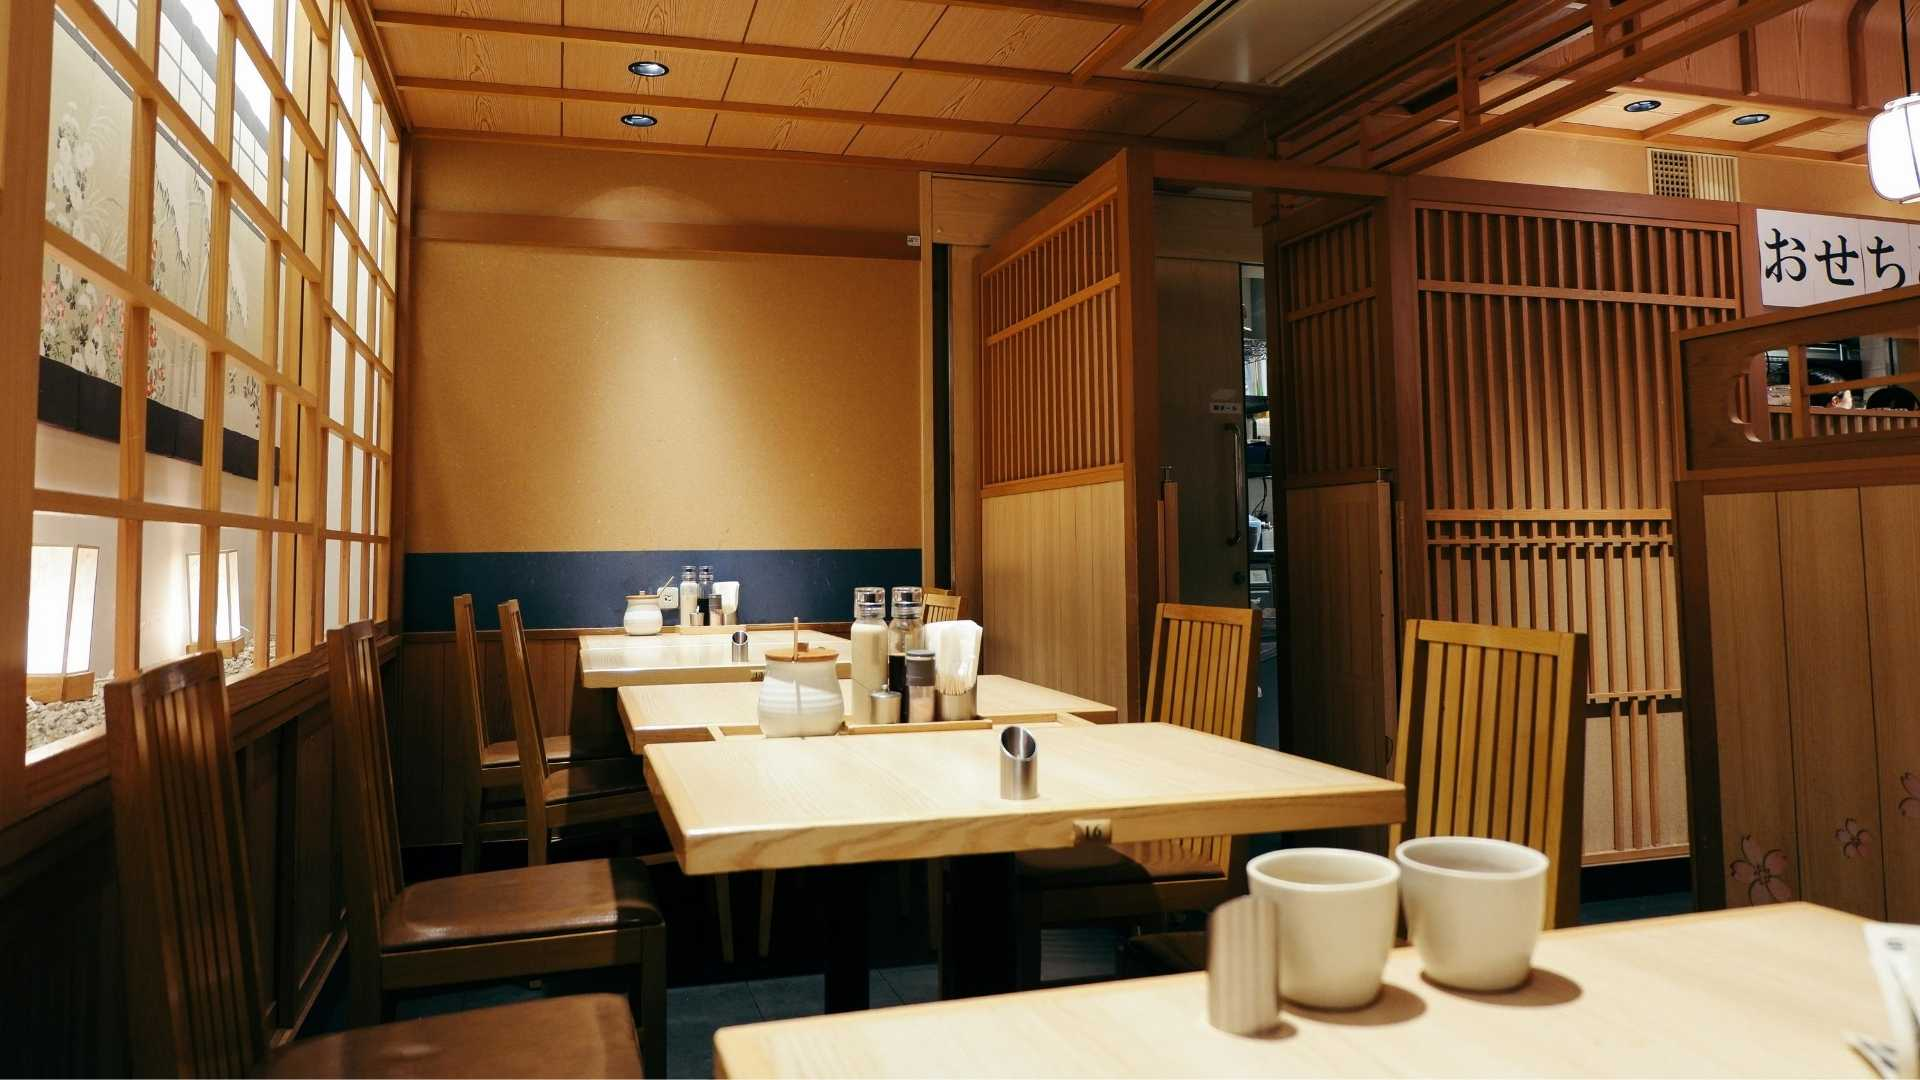 Where to eat in Japan popular japanese chain restaurants you should try